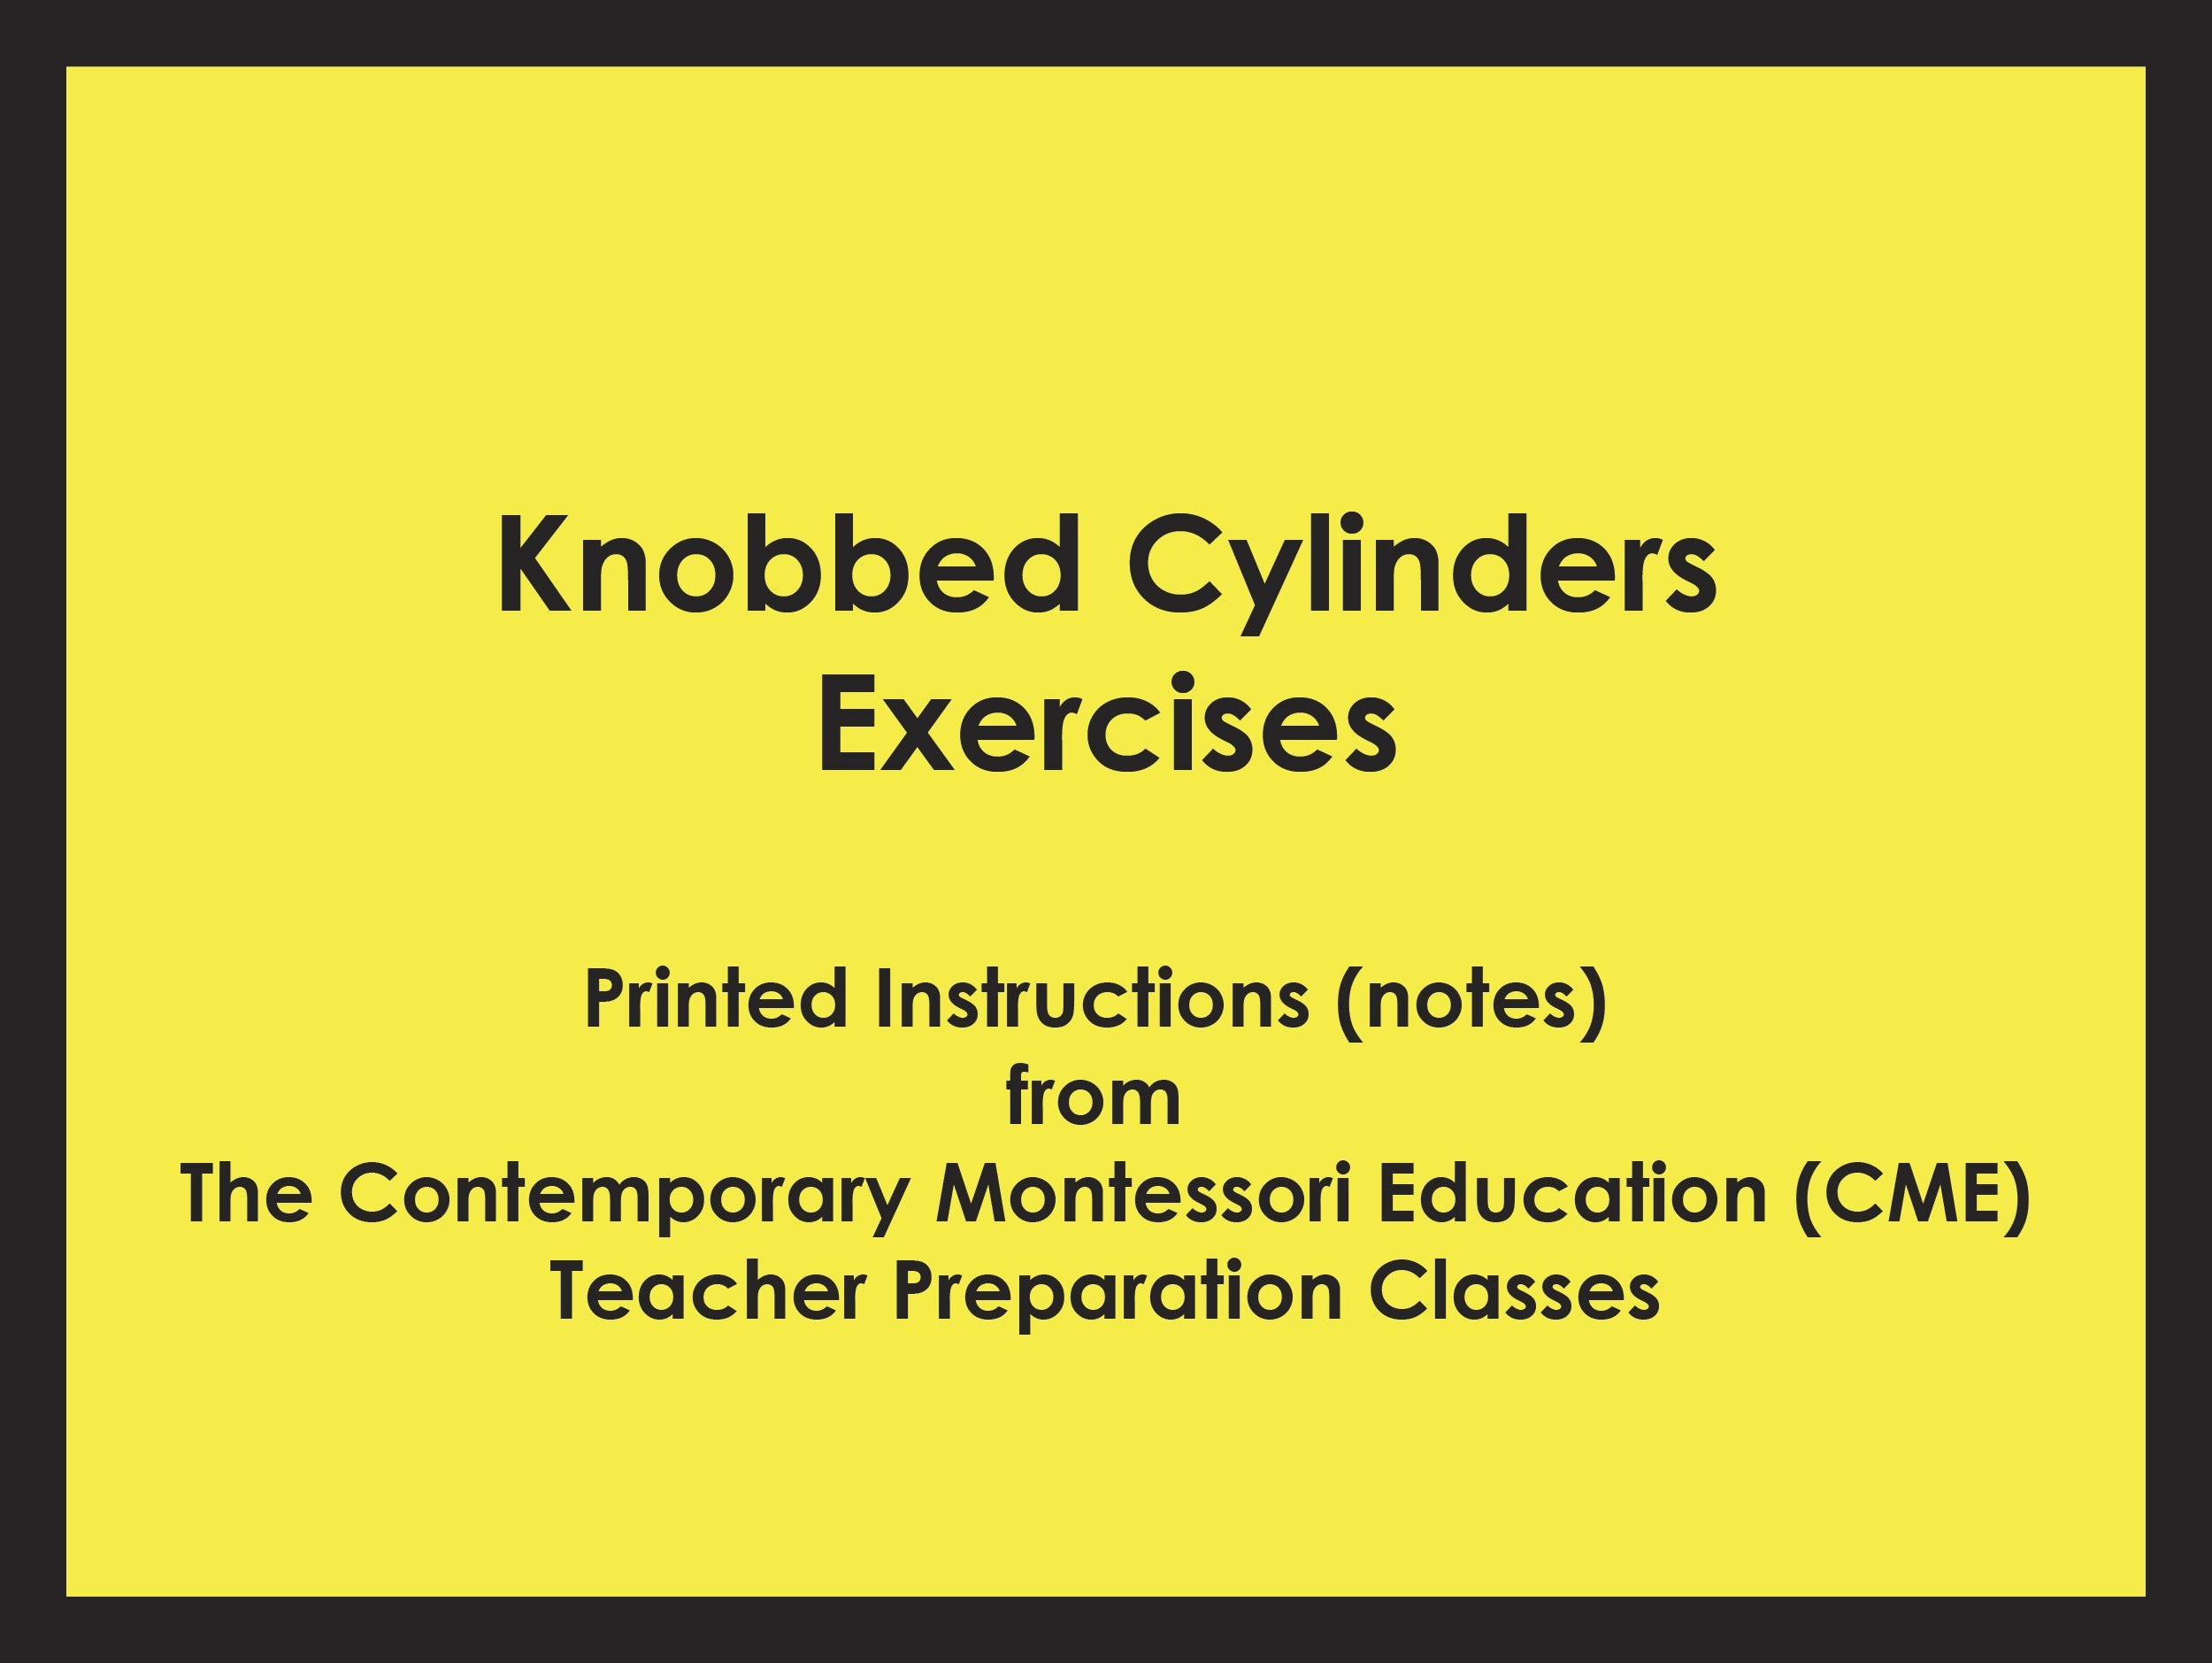 Knobbed Cylinders Exercises (CME notes) ● SENS-CME-020